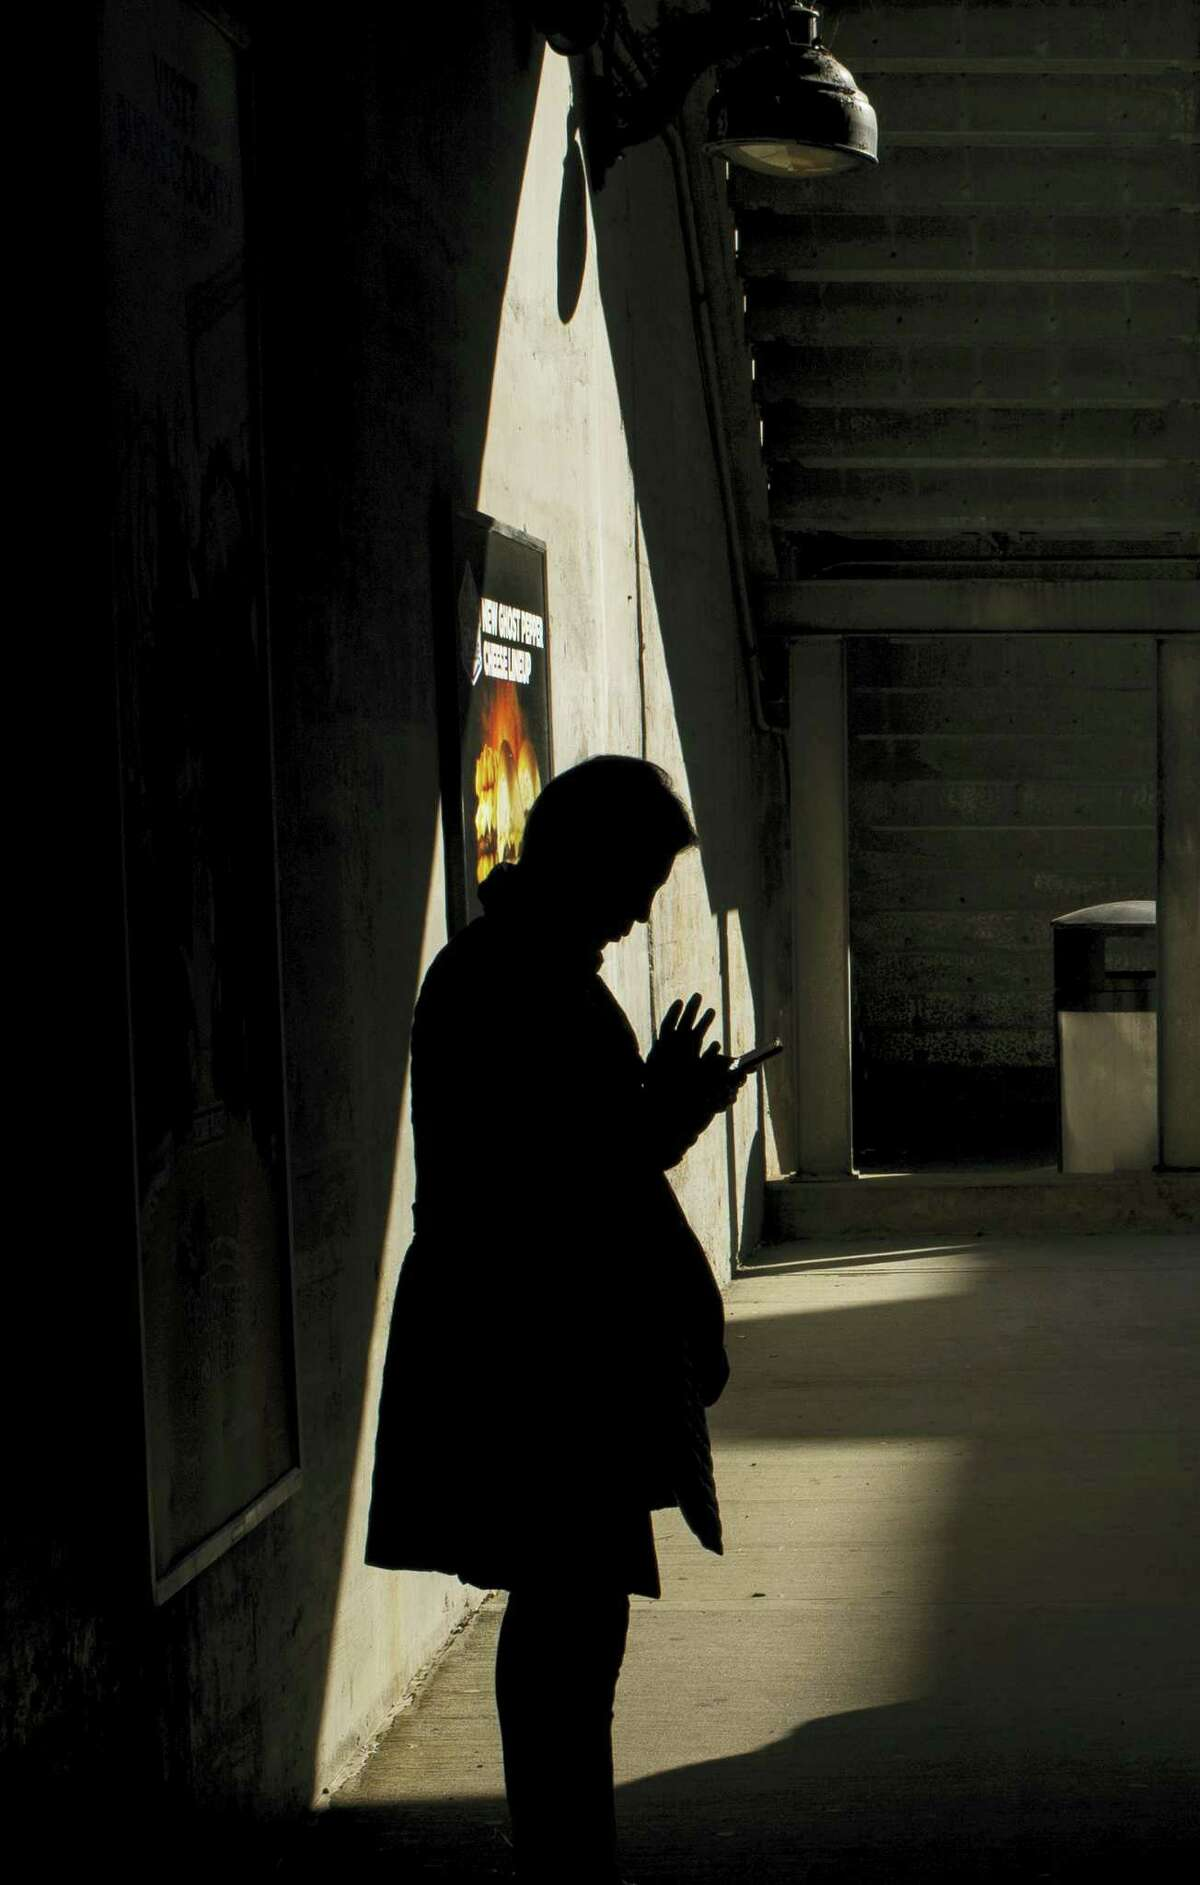 In this Oct. 12, 2016 photo, moments before boarding an arriving train to Manhattan, a morning commuter uses his smartphone on the platform of the Long Island Rail Road at the Bayside Station in the Queens borough of New York. TVs are so last century. News outlets are using Facebook Live, Snapchat, YouTube and other tools to offer live coverage of Election Day in ways not possible four years ago.